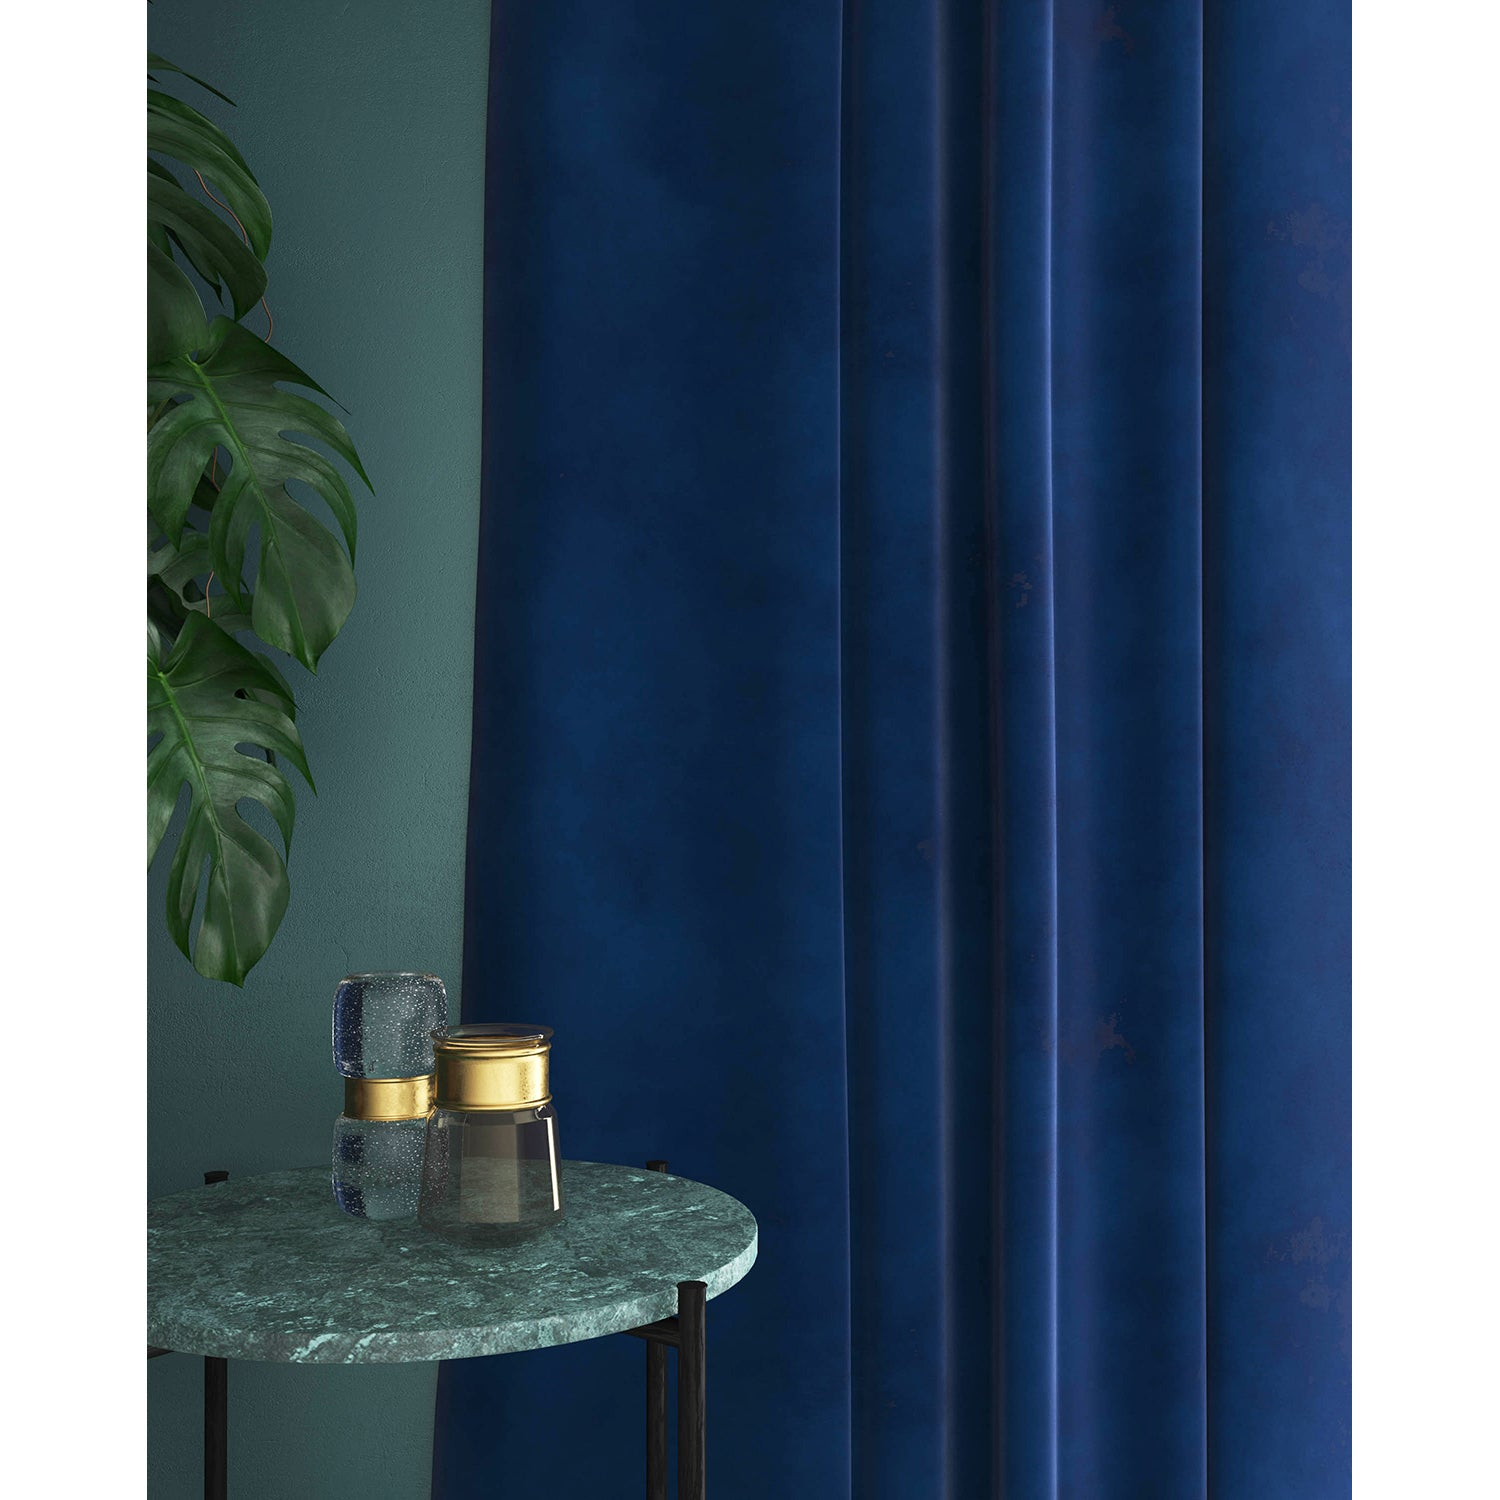 Royal Blue velvet curtains with a stain resistant finish